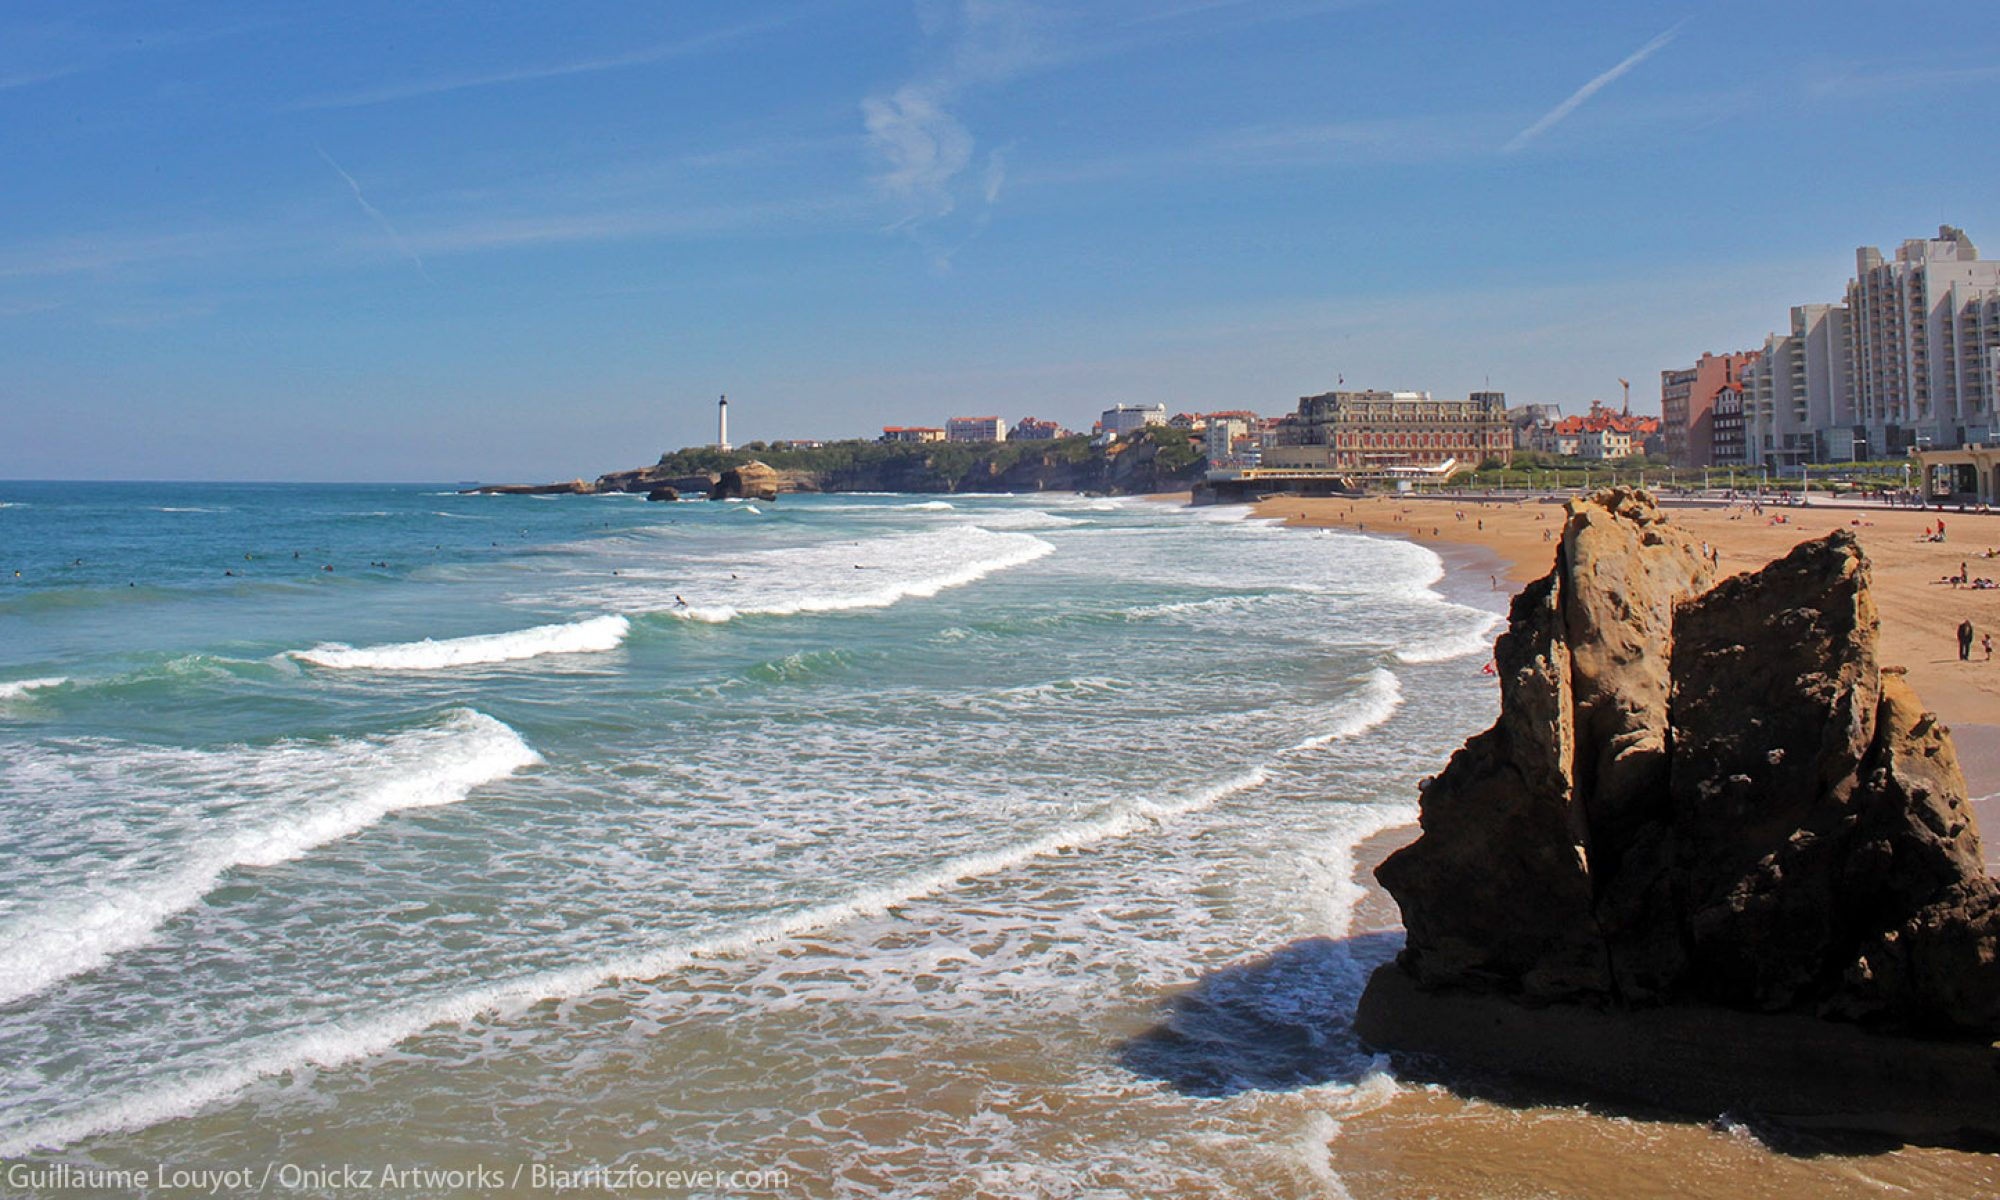 Biarritz Forever